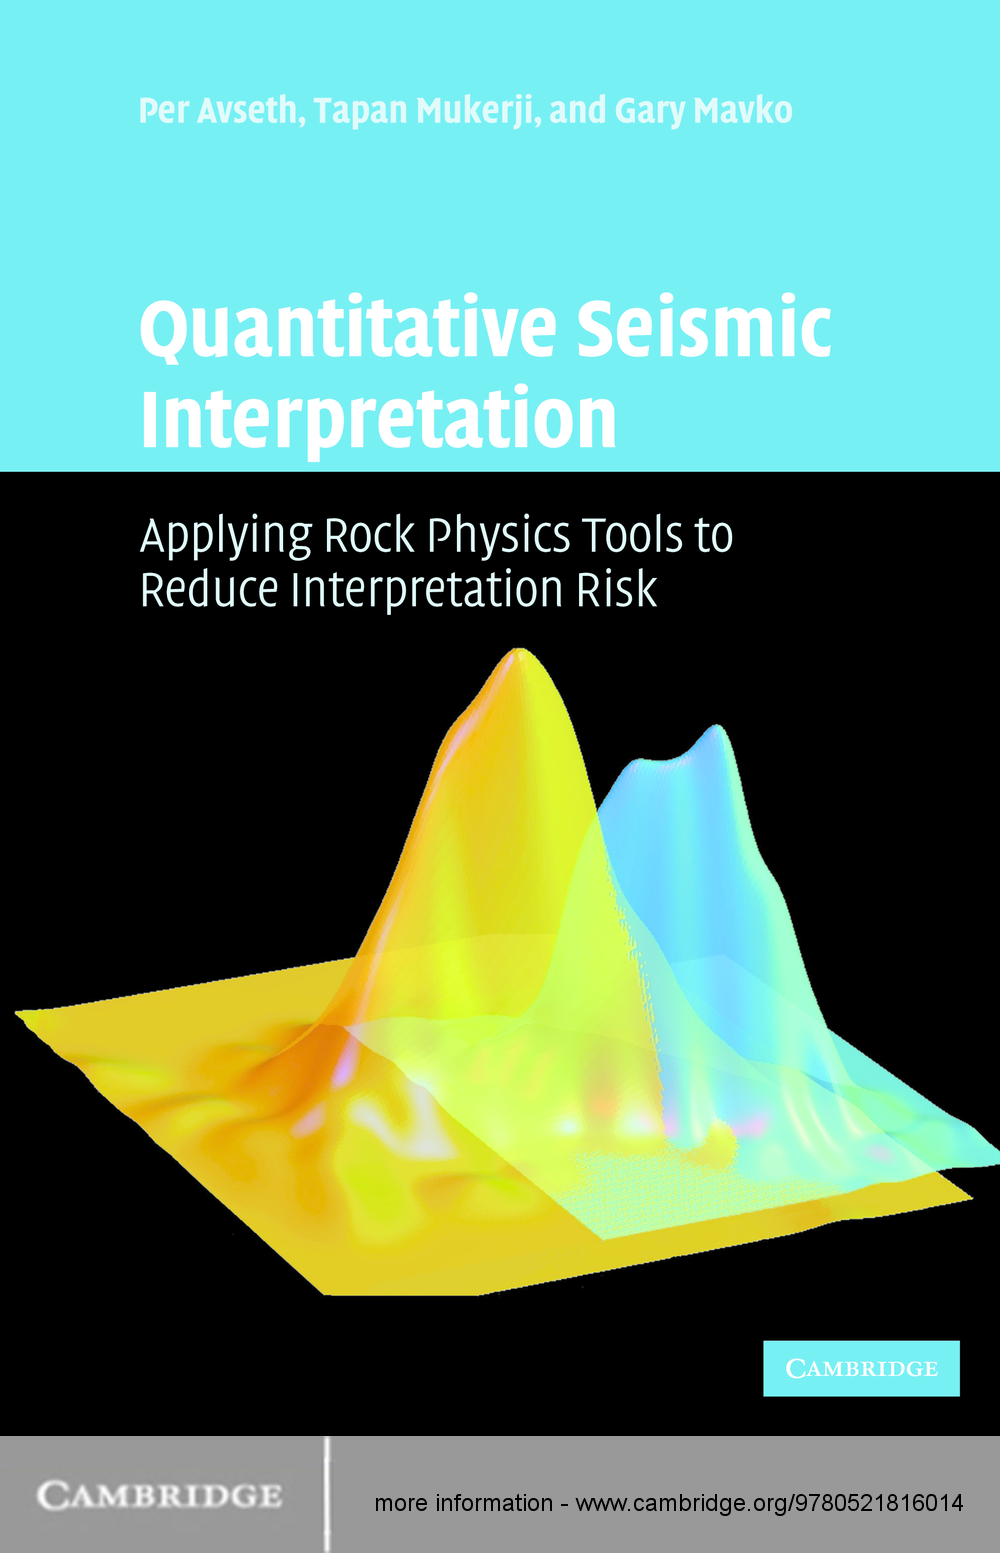 Quantitative Seismic Interpretation Applying Rock Physics Tools to Reduce Interpretation Risk